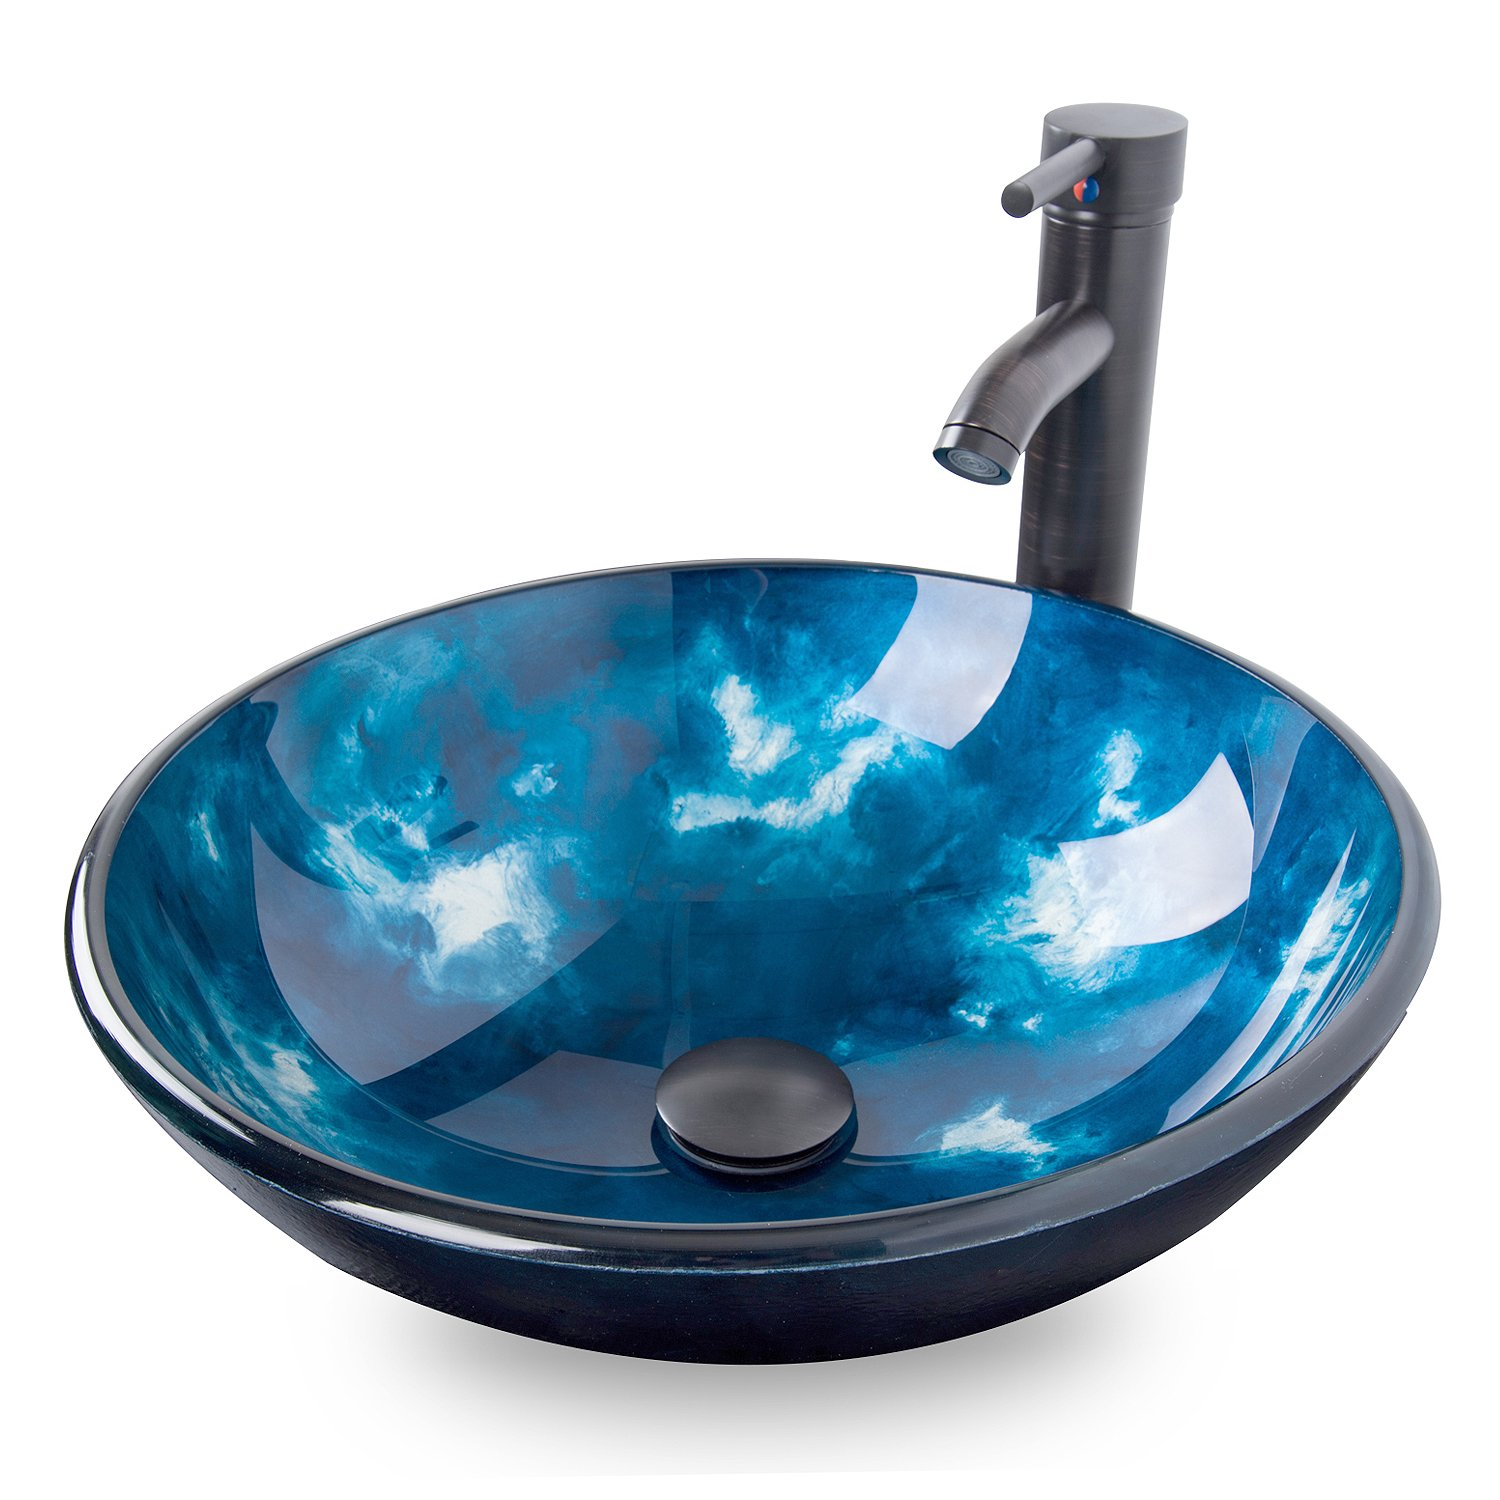 ELECWISH Bathroom Round Vessel Sink Ocean Blue Tempered Glass Above Top Hand Painting Artistic Sink with Oil Rubbed Bronze Faucet & Pop Up Drain